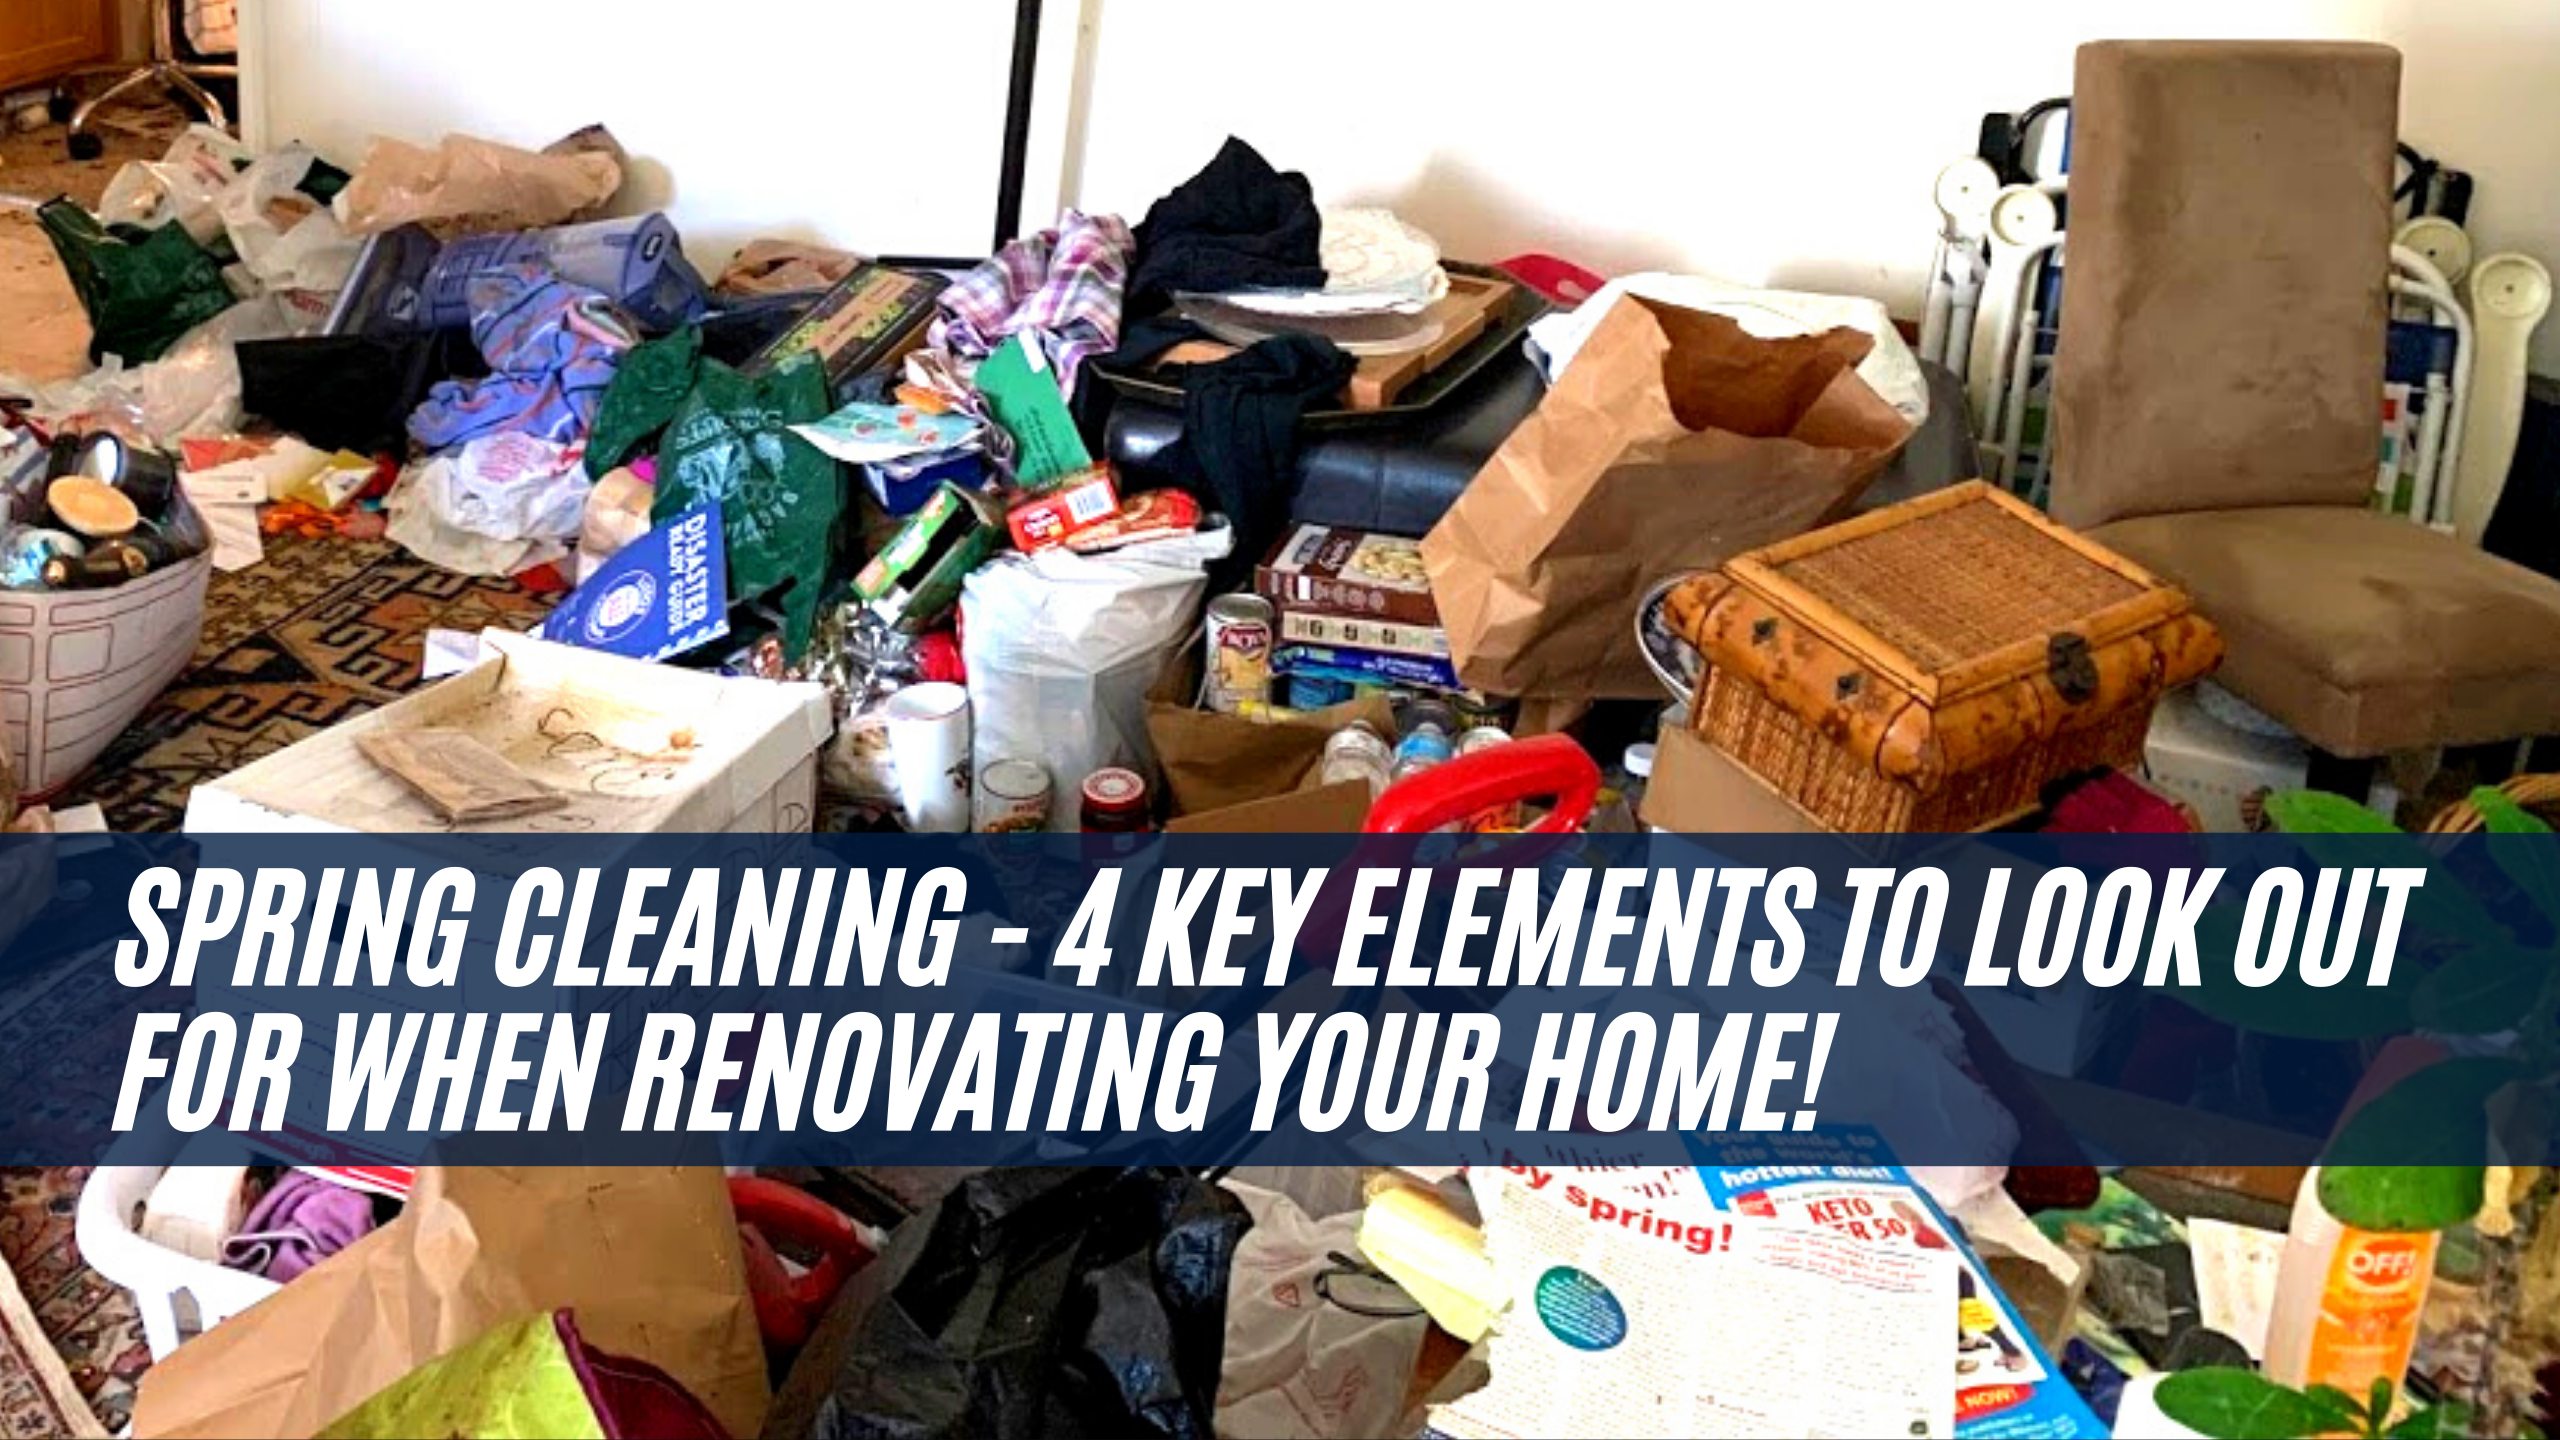 Spring Cleaning - 4 Key Elements to Look Out for when Renovating your Home!